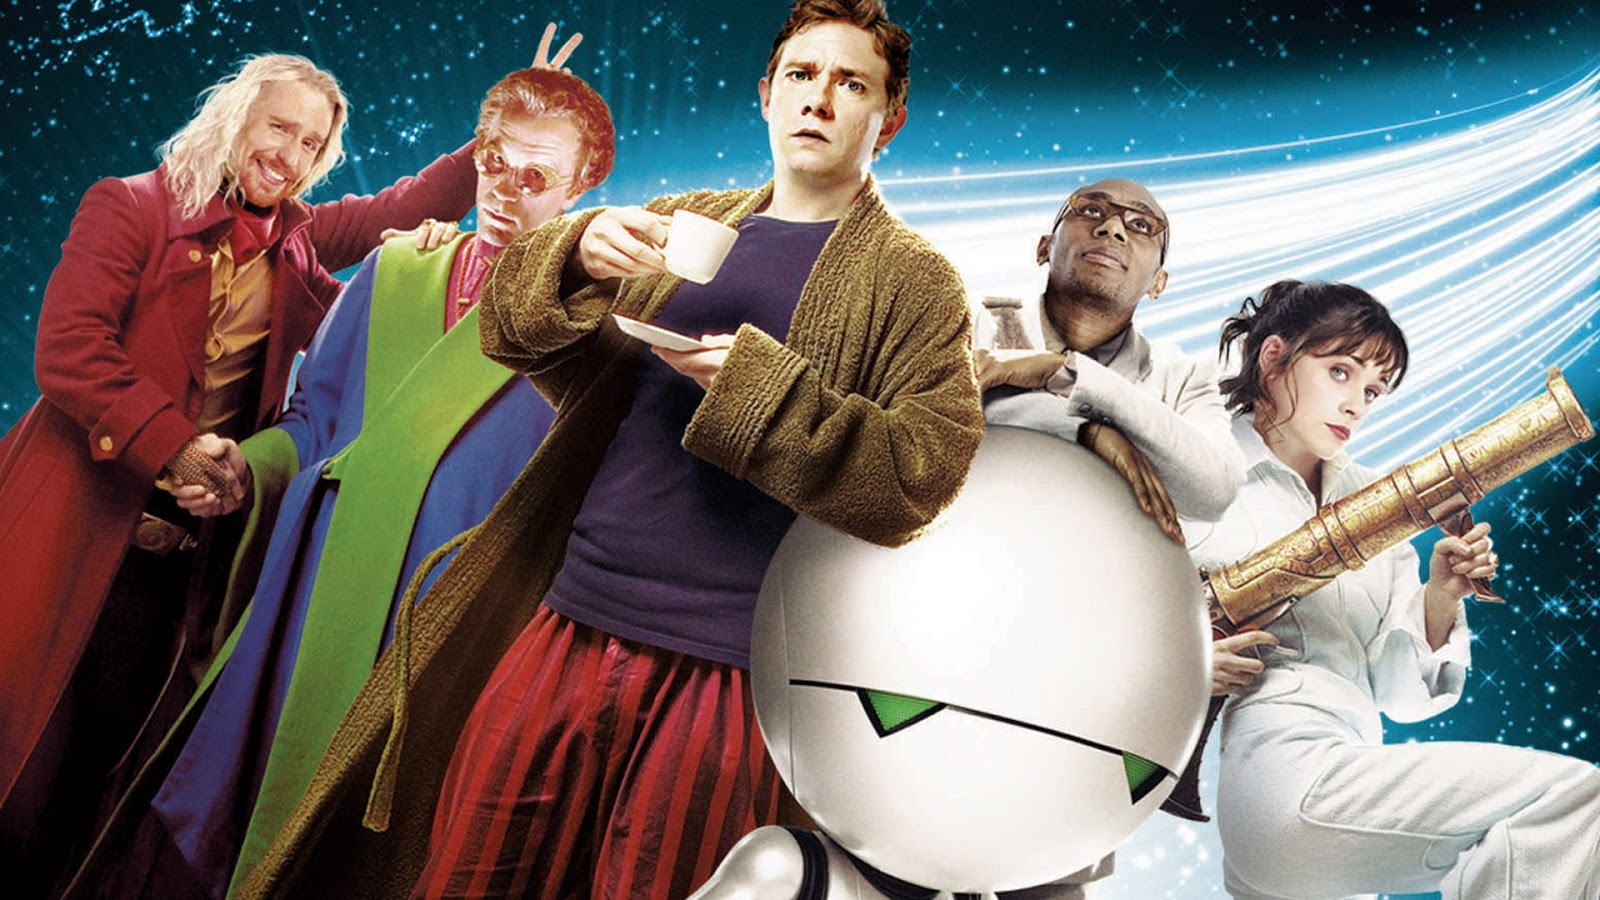 the hitchhikers guide to the galaxy Download hitchhiker's guide wallpaper celebrate the end of the quintessential phase by downloading our hitchhiker's guide wallpaper, featuring some of the stars who have appeared in the bbc radio and tv series since 1978.